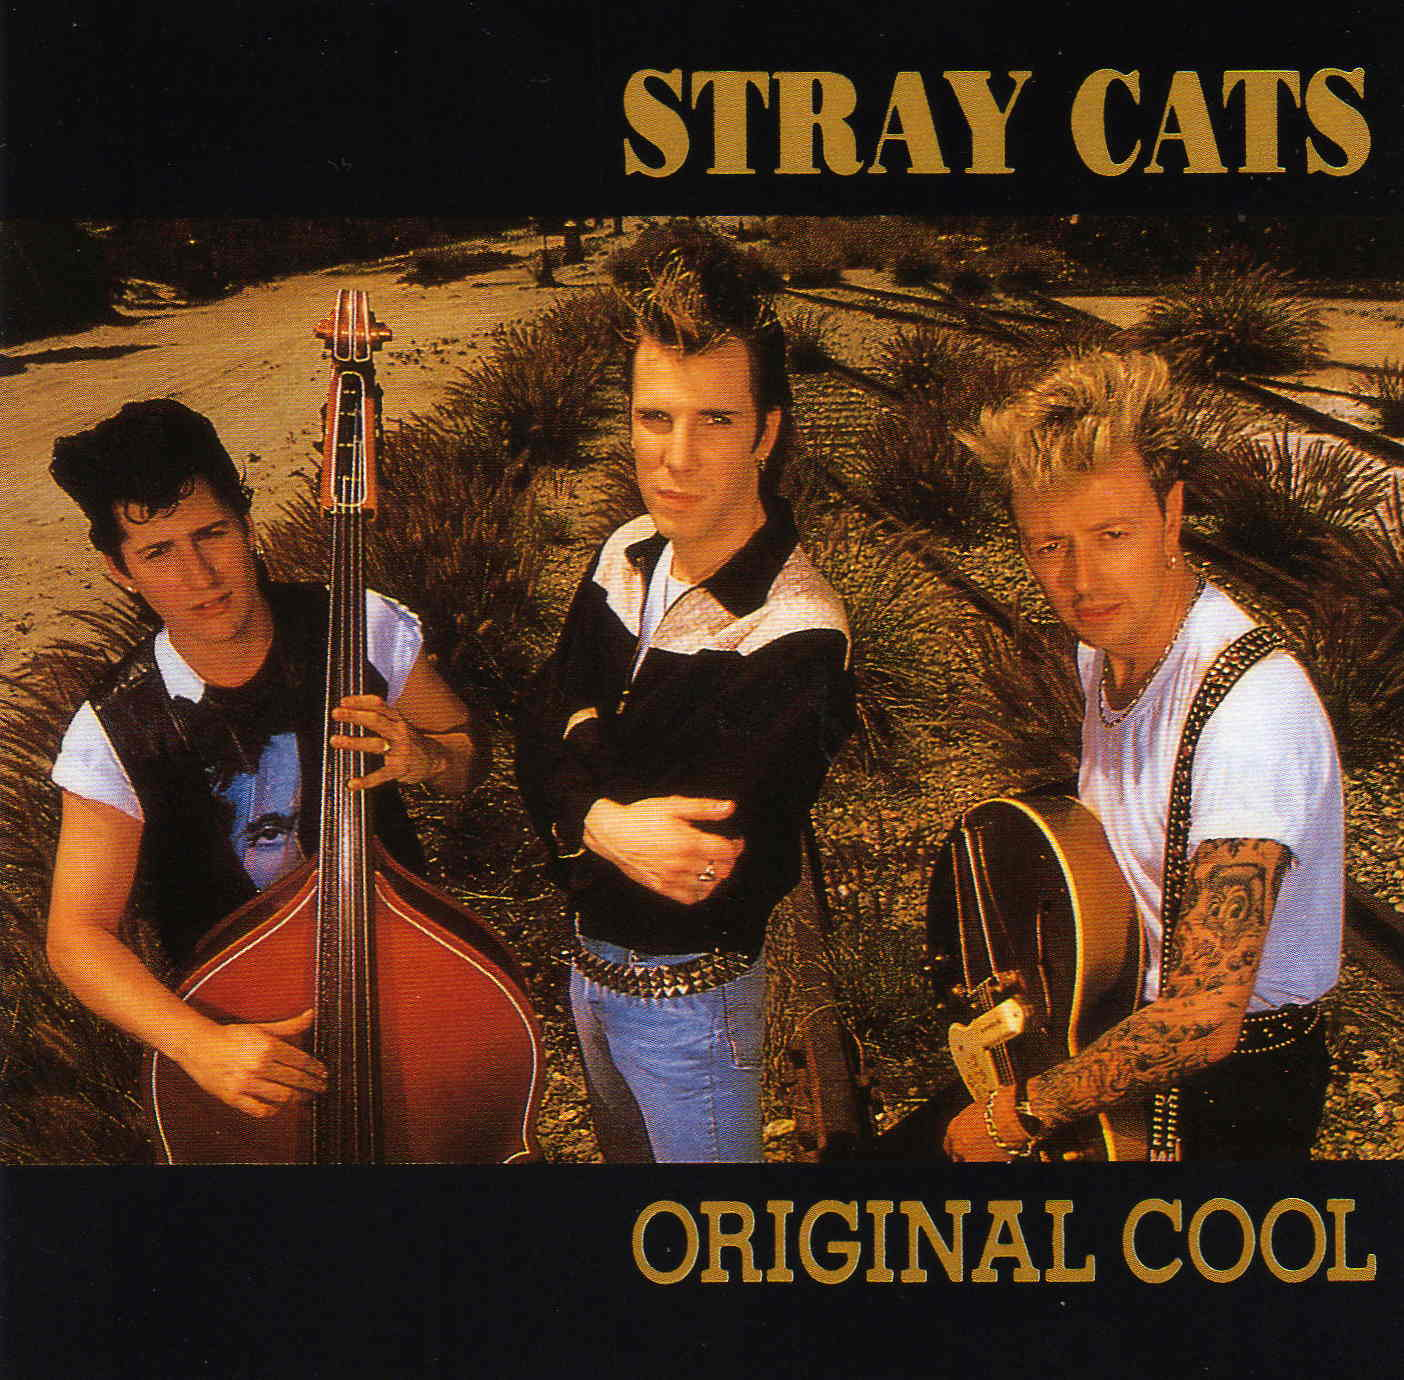 The Stray Cats Mystery Train